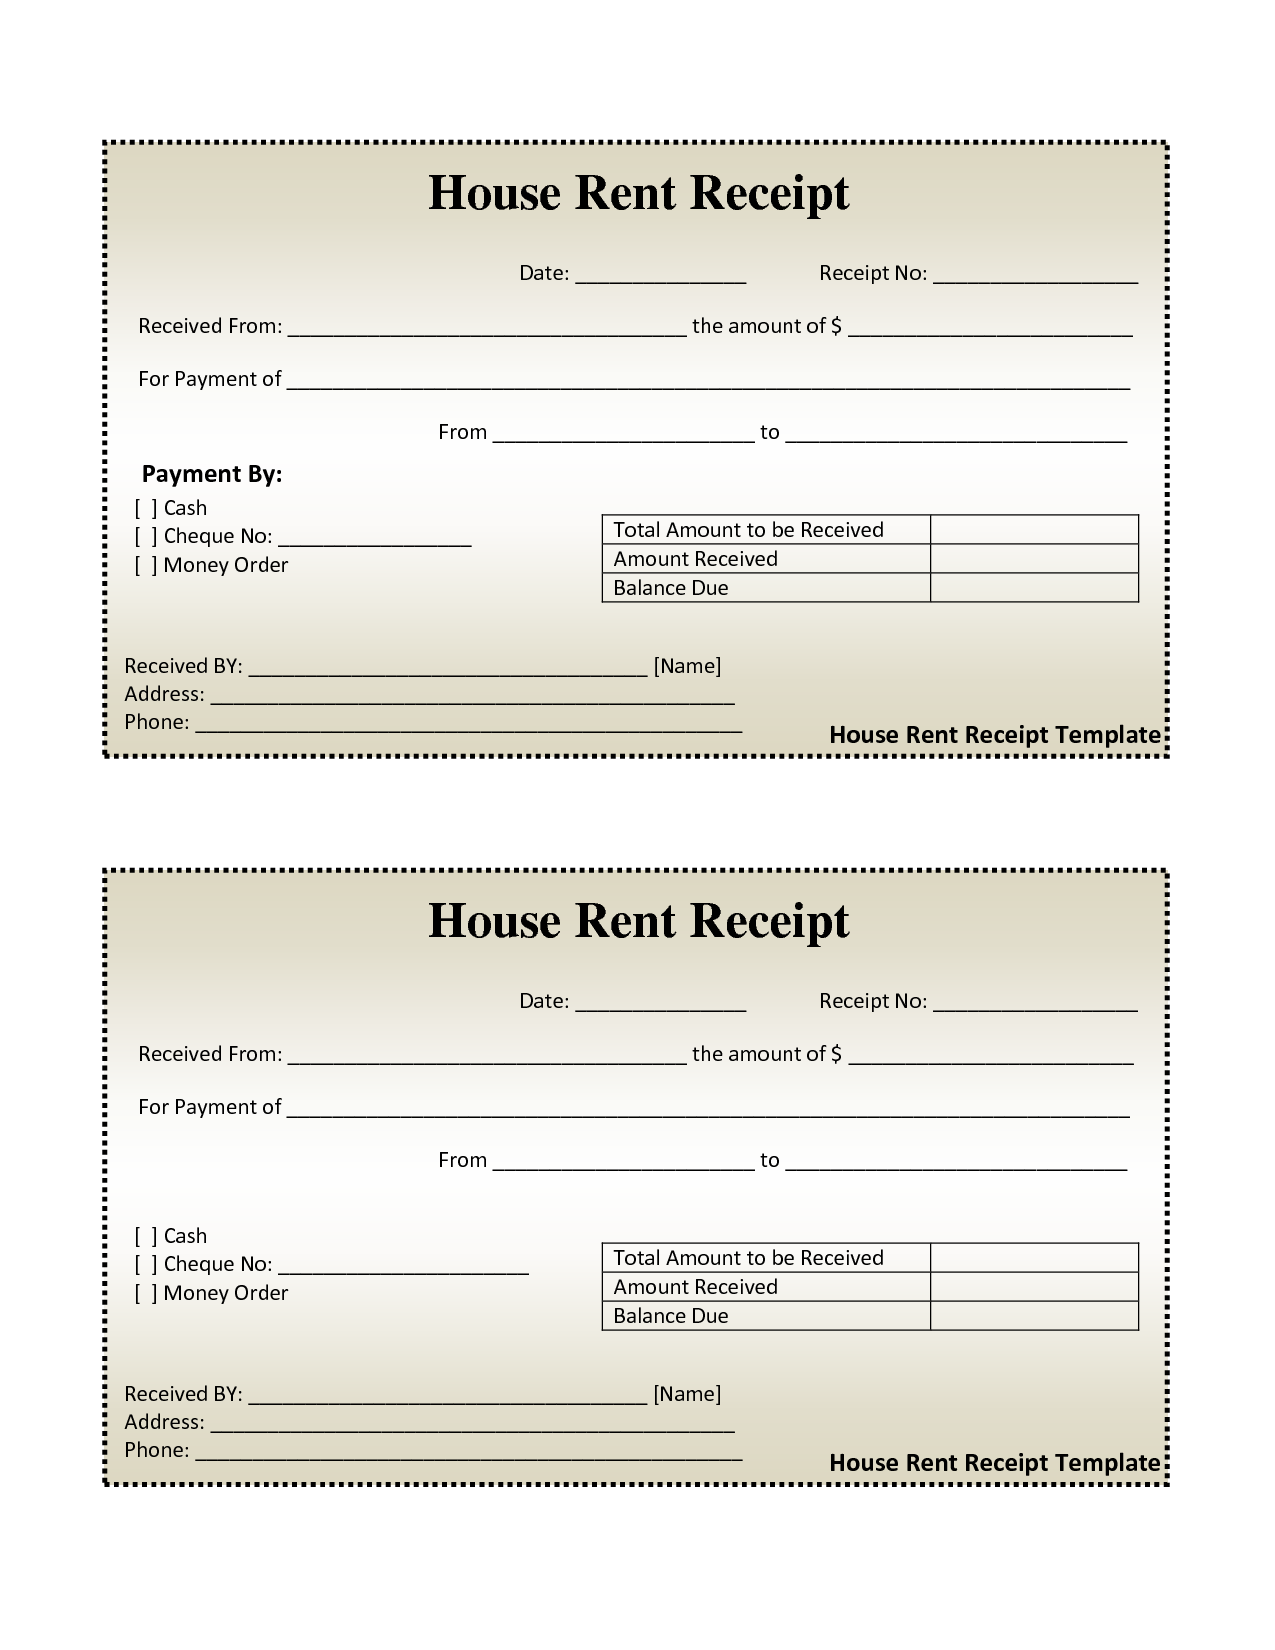 Free House Rental Invoice | House Rent Receipt Template   DOC  Free Rental Receipts